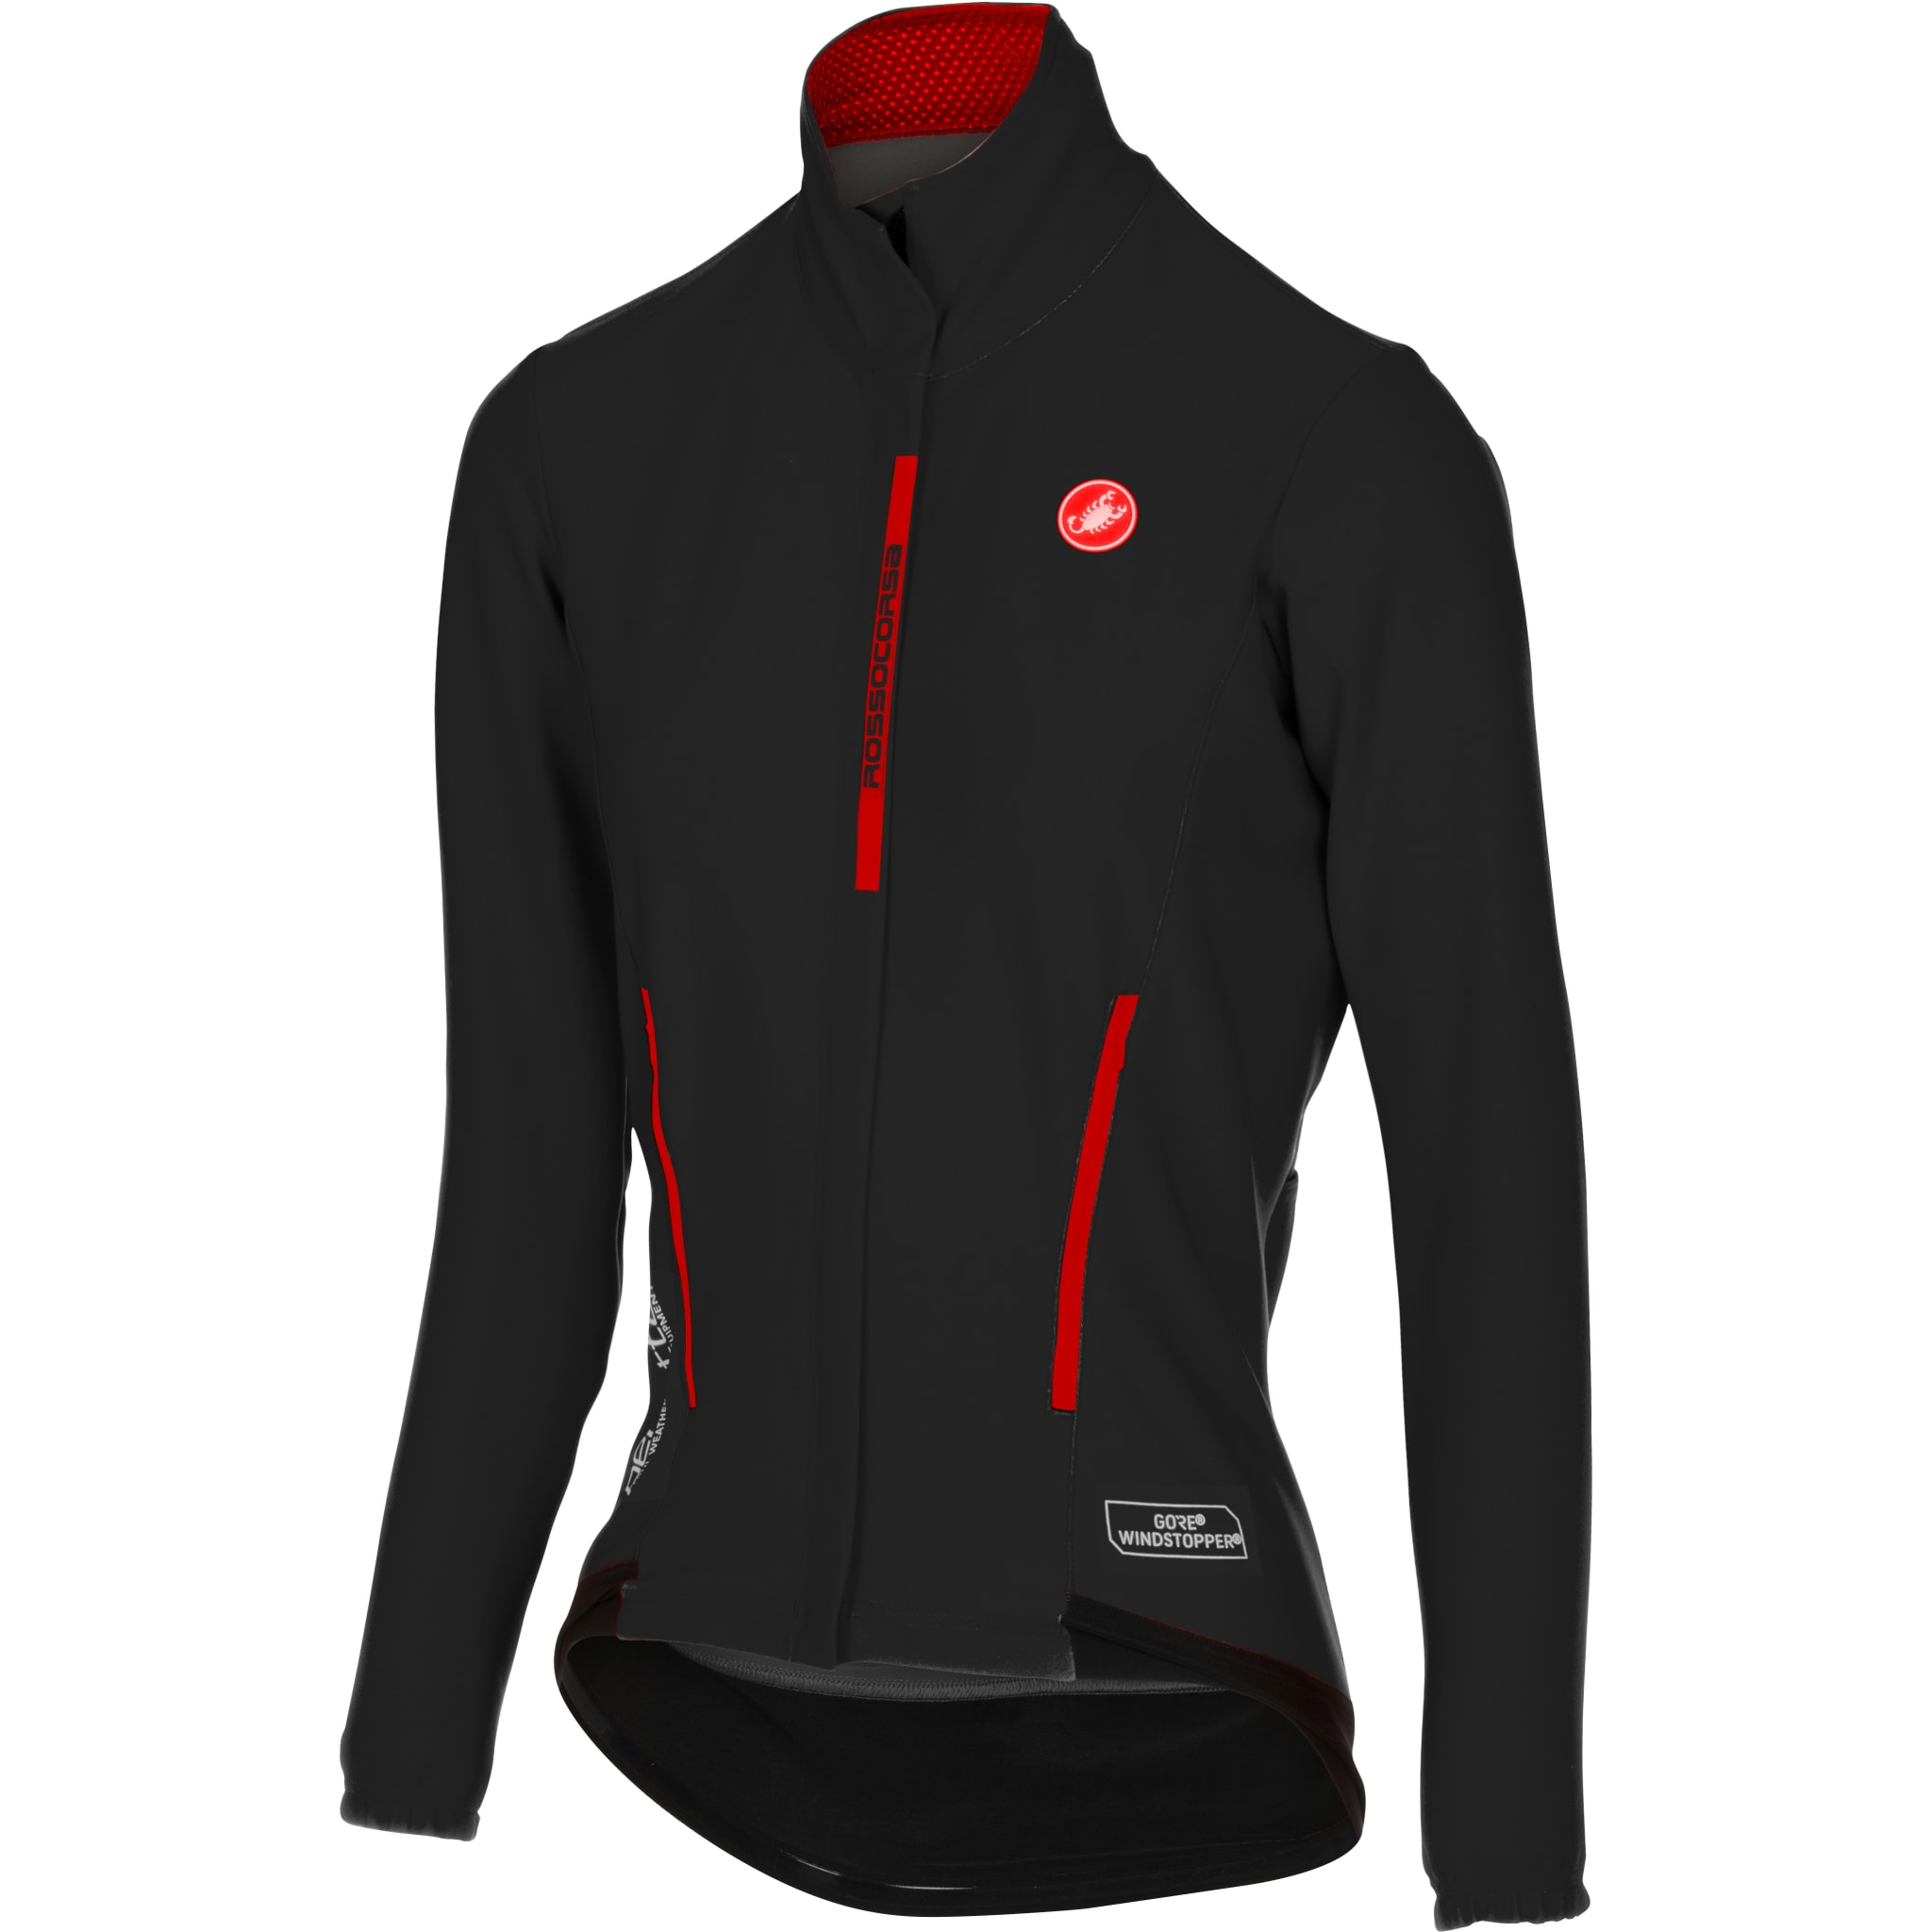 Perfetto Long Sleeve W